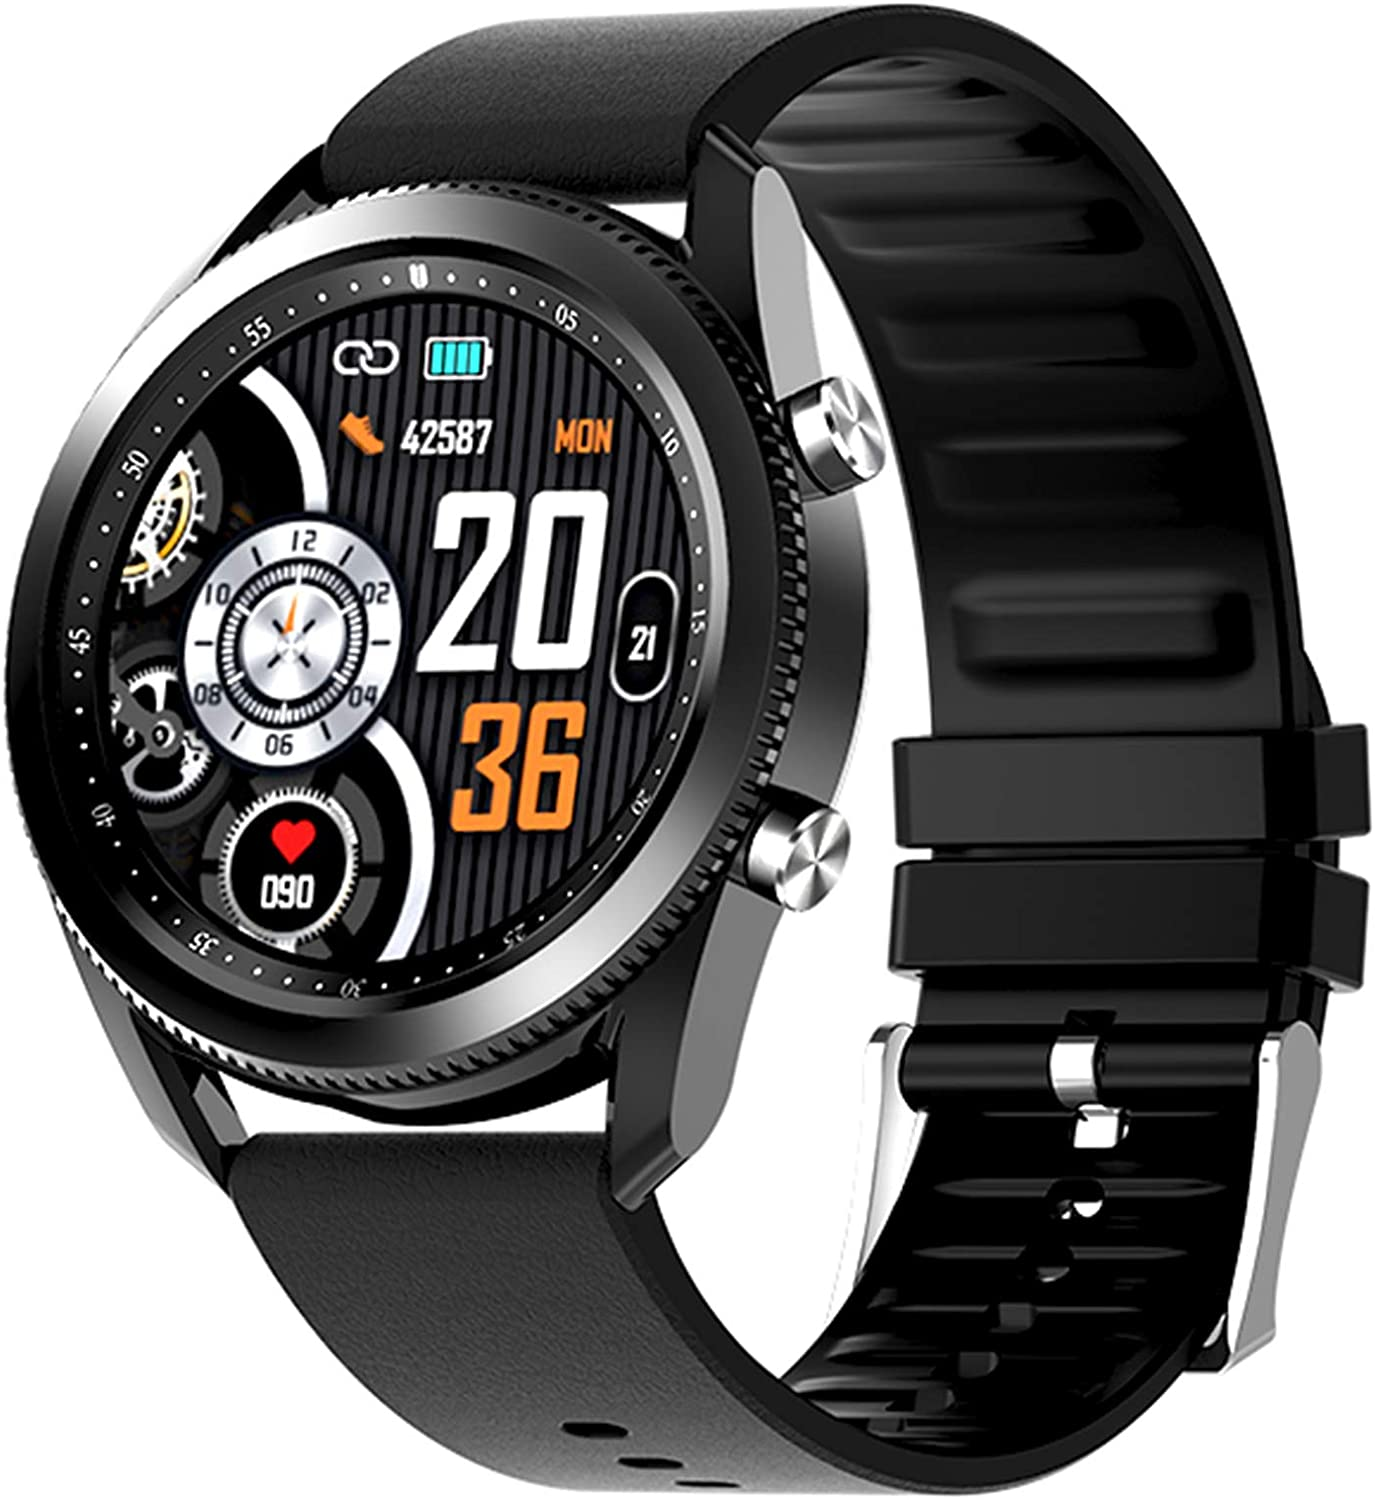 QFSLR Smart Watches for Men Los Angeles Mall with High quality new Fitness Bluetooth Call Tracker